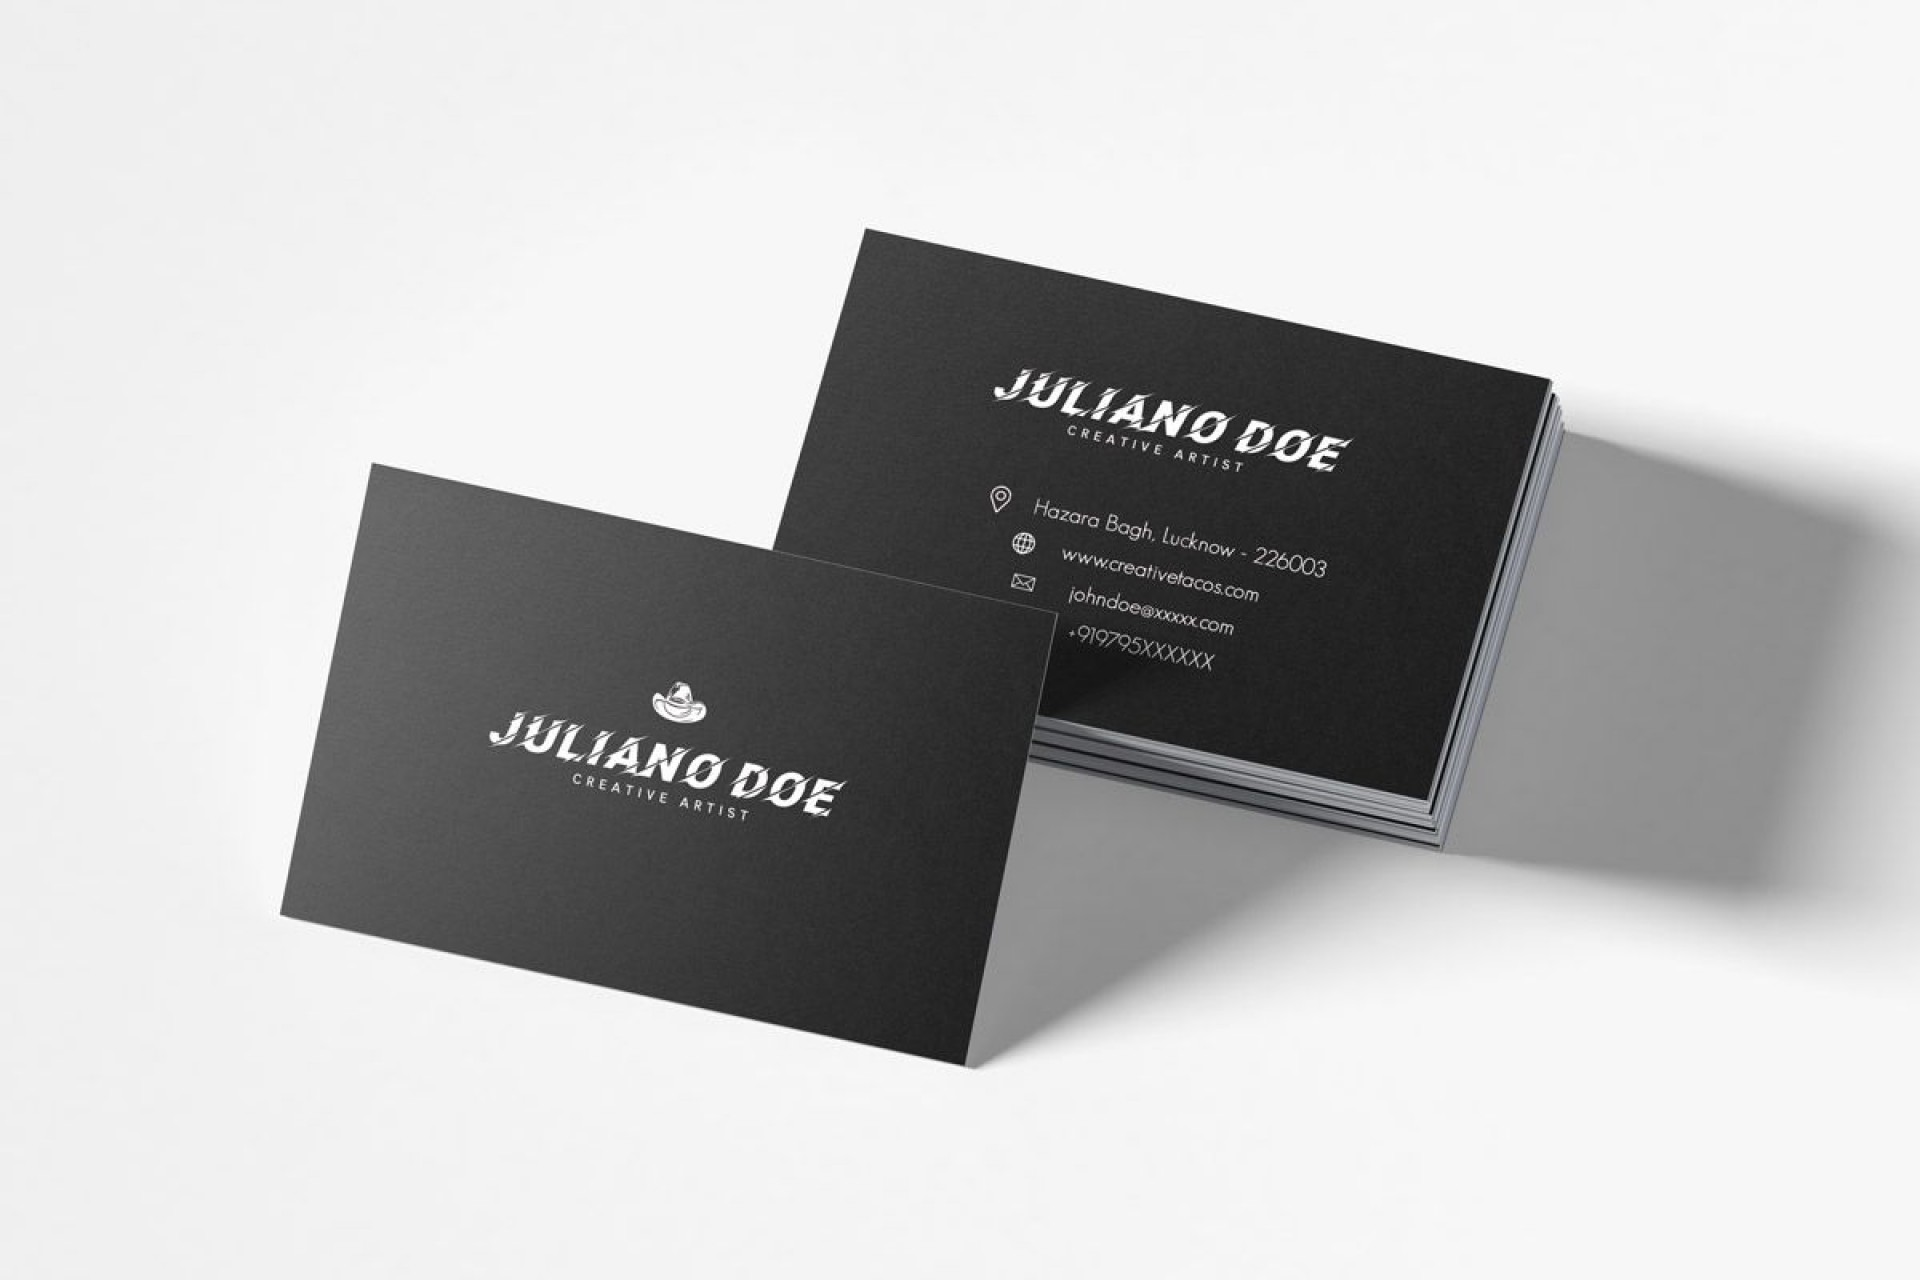 007 Exceptional Busines Card Template Psd Sample  Professional Photographer Freebie Visiting File Free Download1920